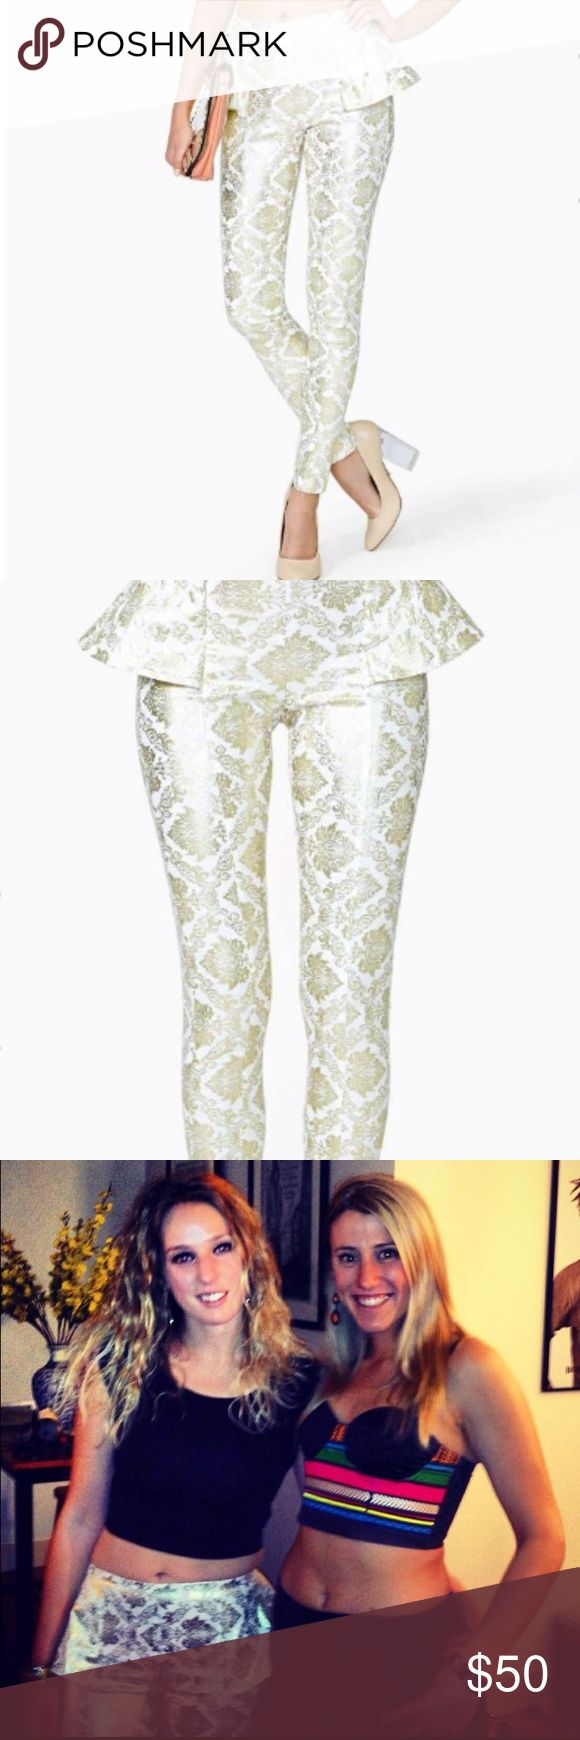 Nasty Gal Peplum Pants Super cute peplum pants with gold detail. Zip at the back and hits at the ankle. Very flattering shape with stretch. Nasty Gal Pants Ankle & Cropped